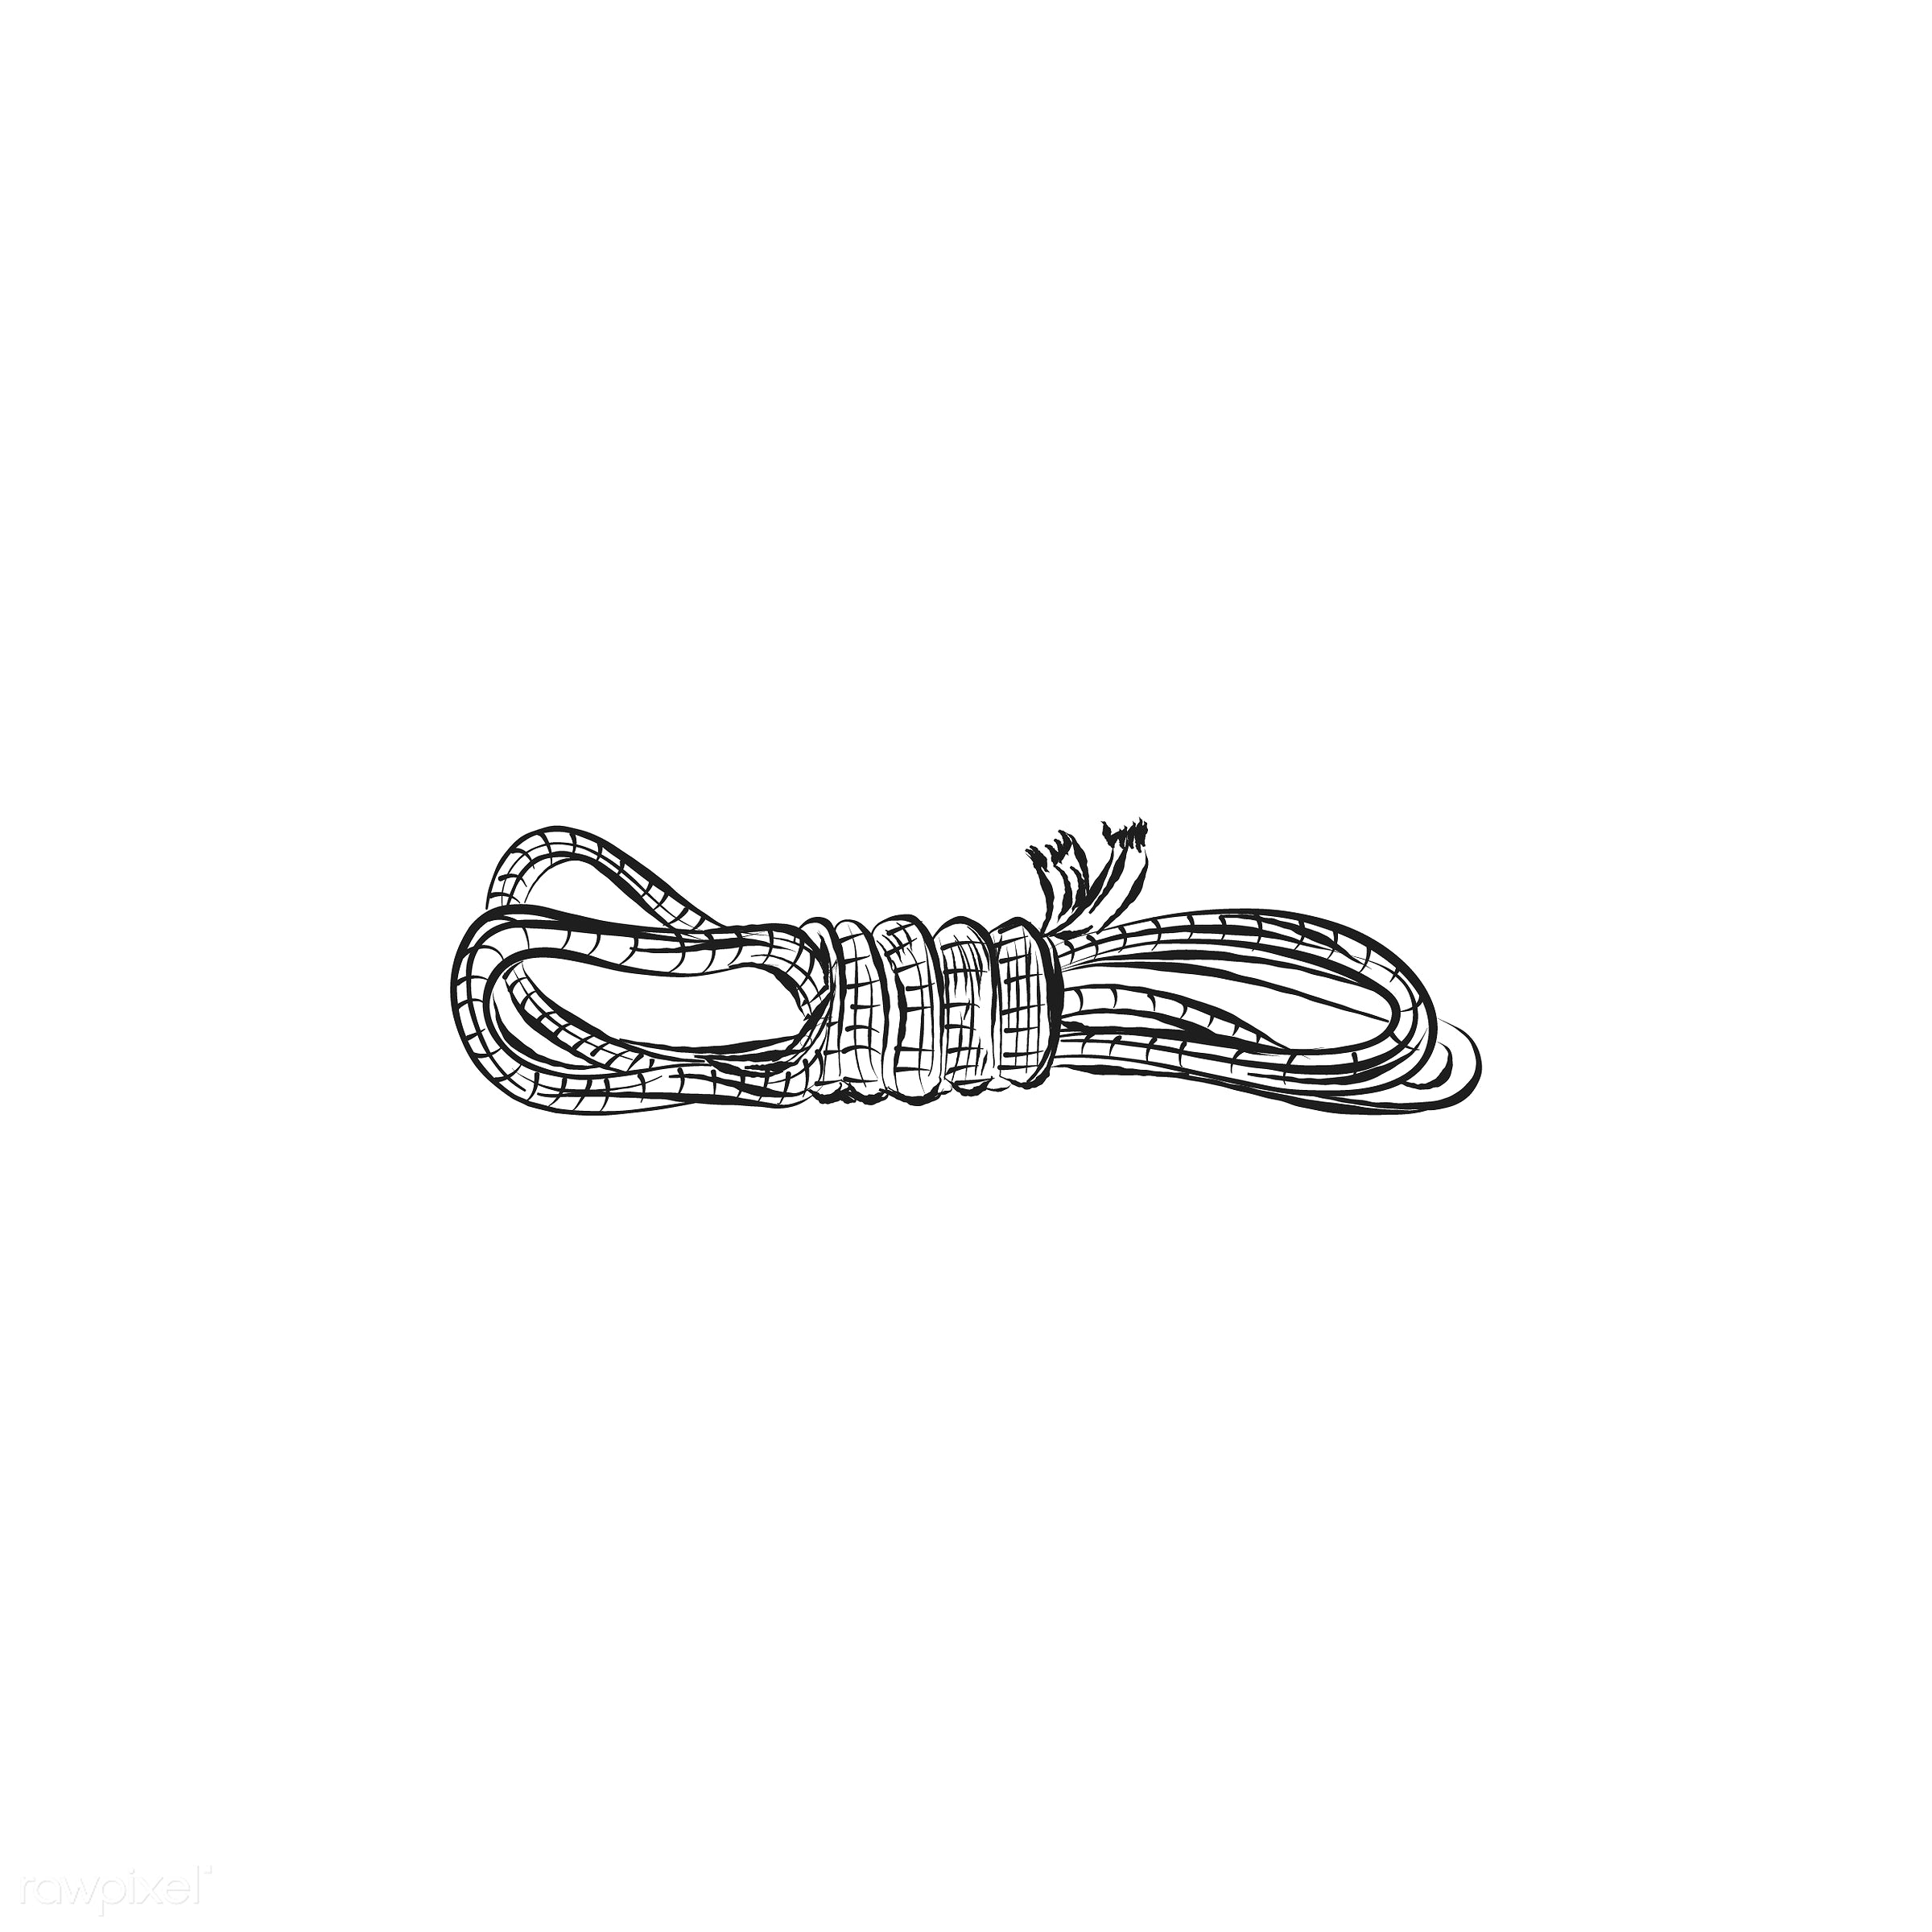 Vintage illustration of rope - antique, black, design, drawing, equipment, fisherman, fishing, graphic, hand drawing, hand...